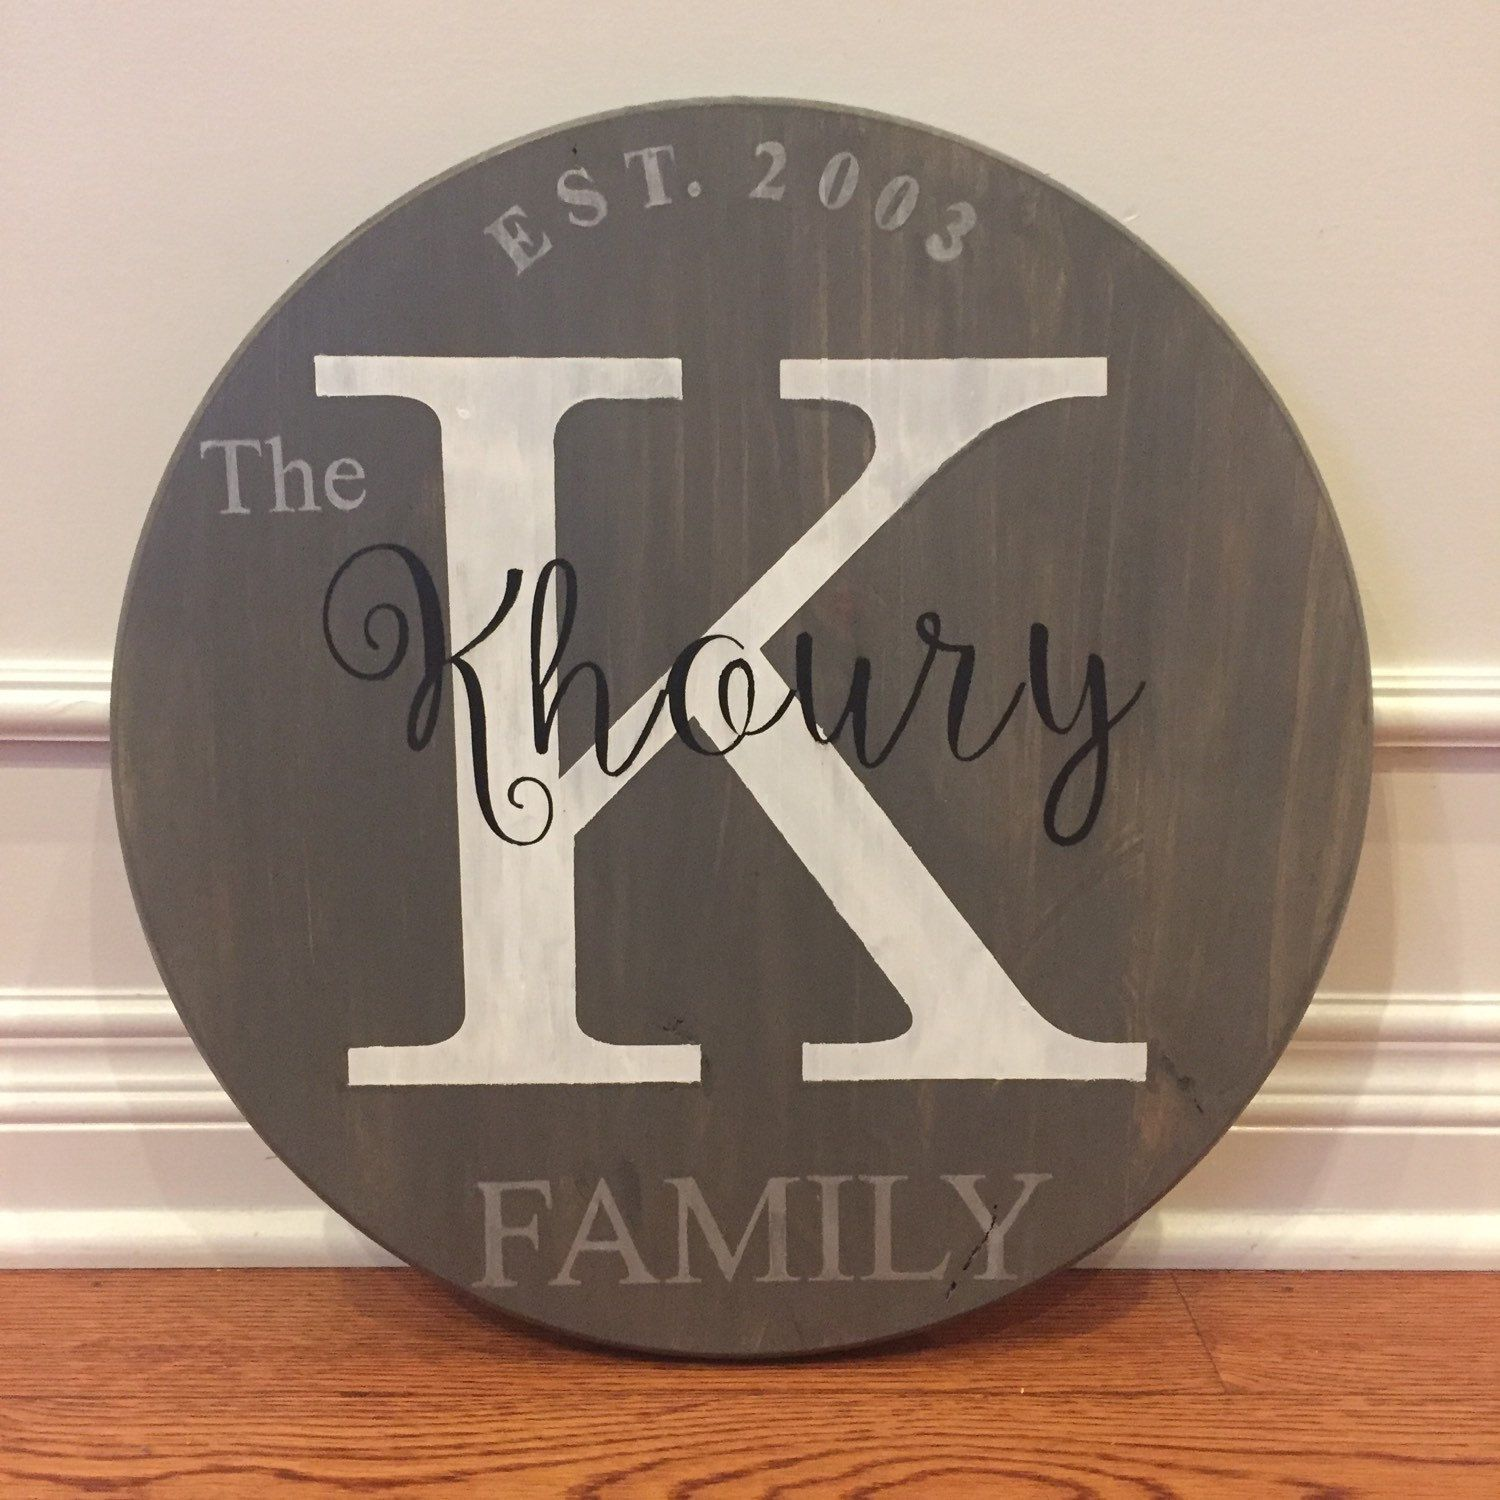 Personalized Wood Wall Art custom wood pallet custom wall art custom wood sign round monogram